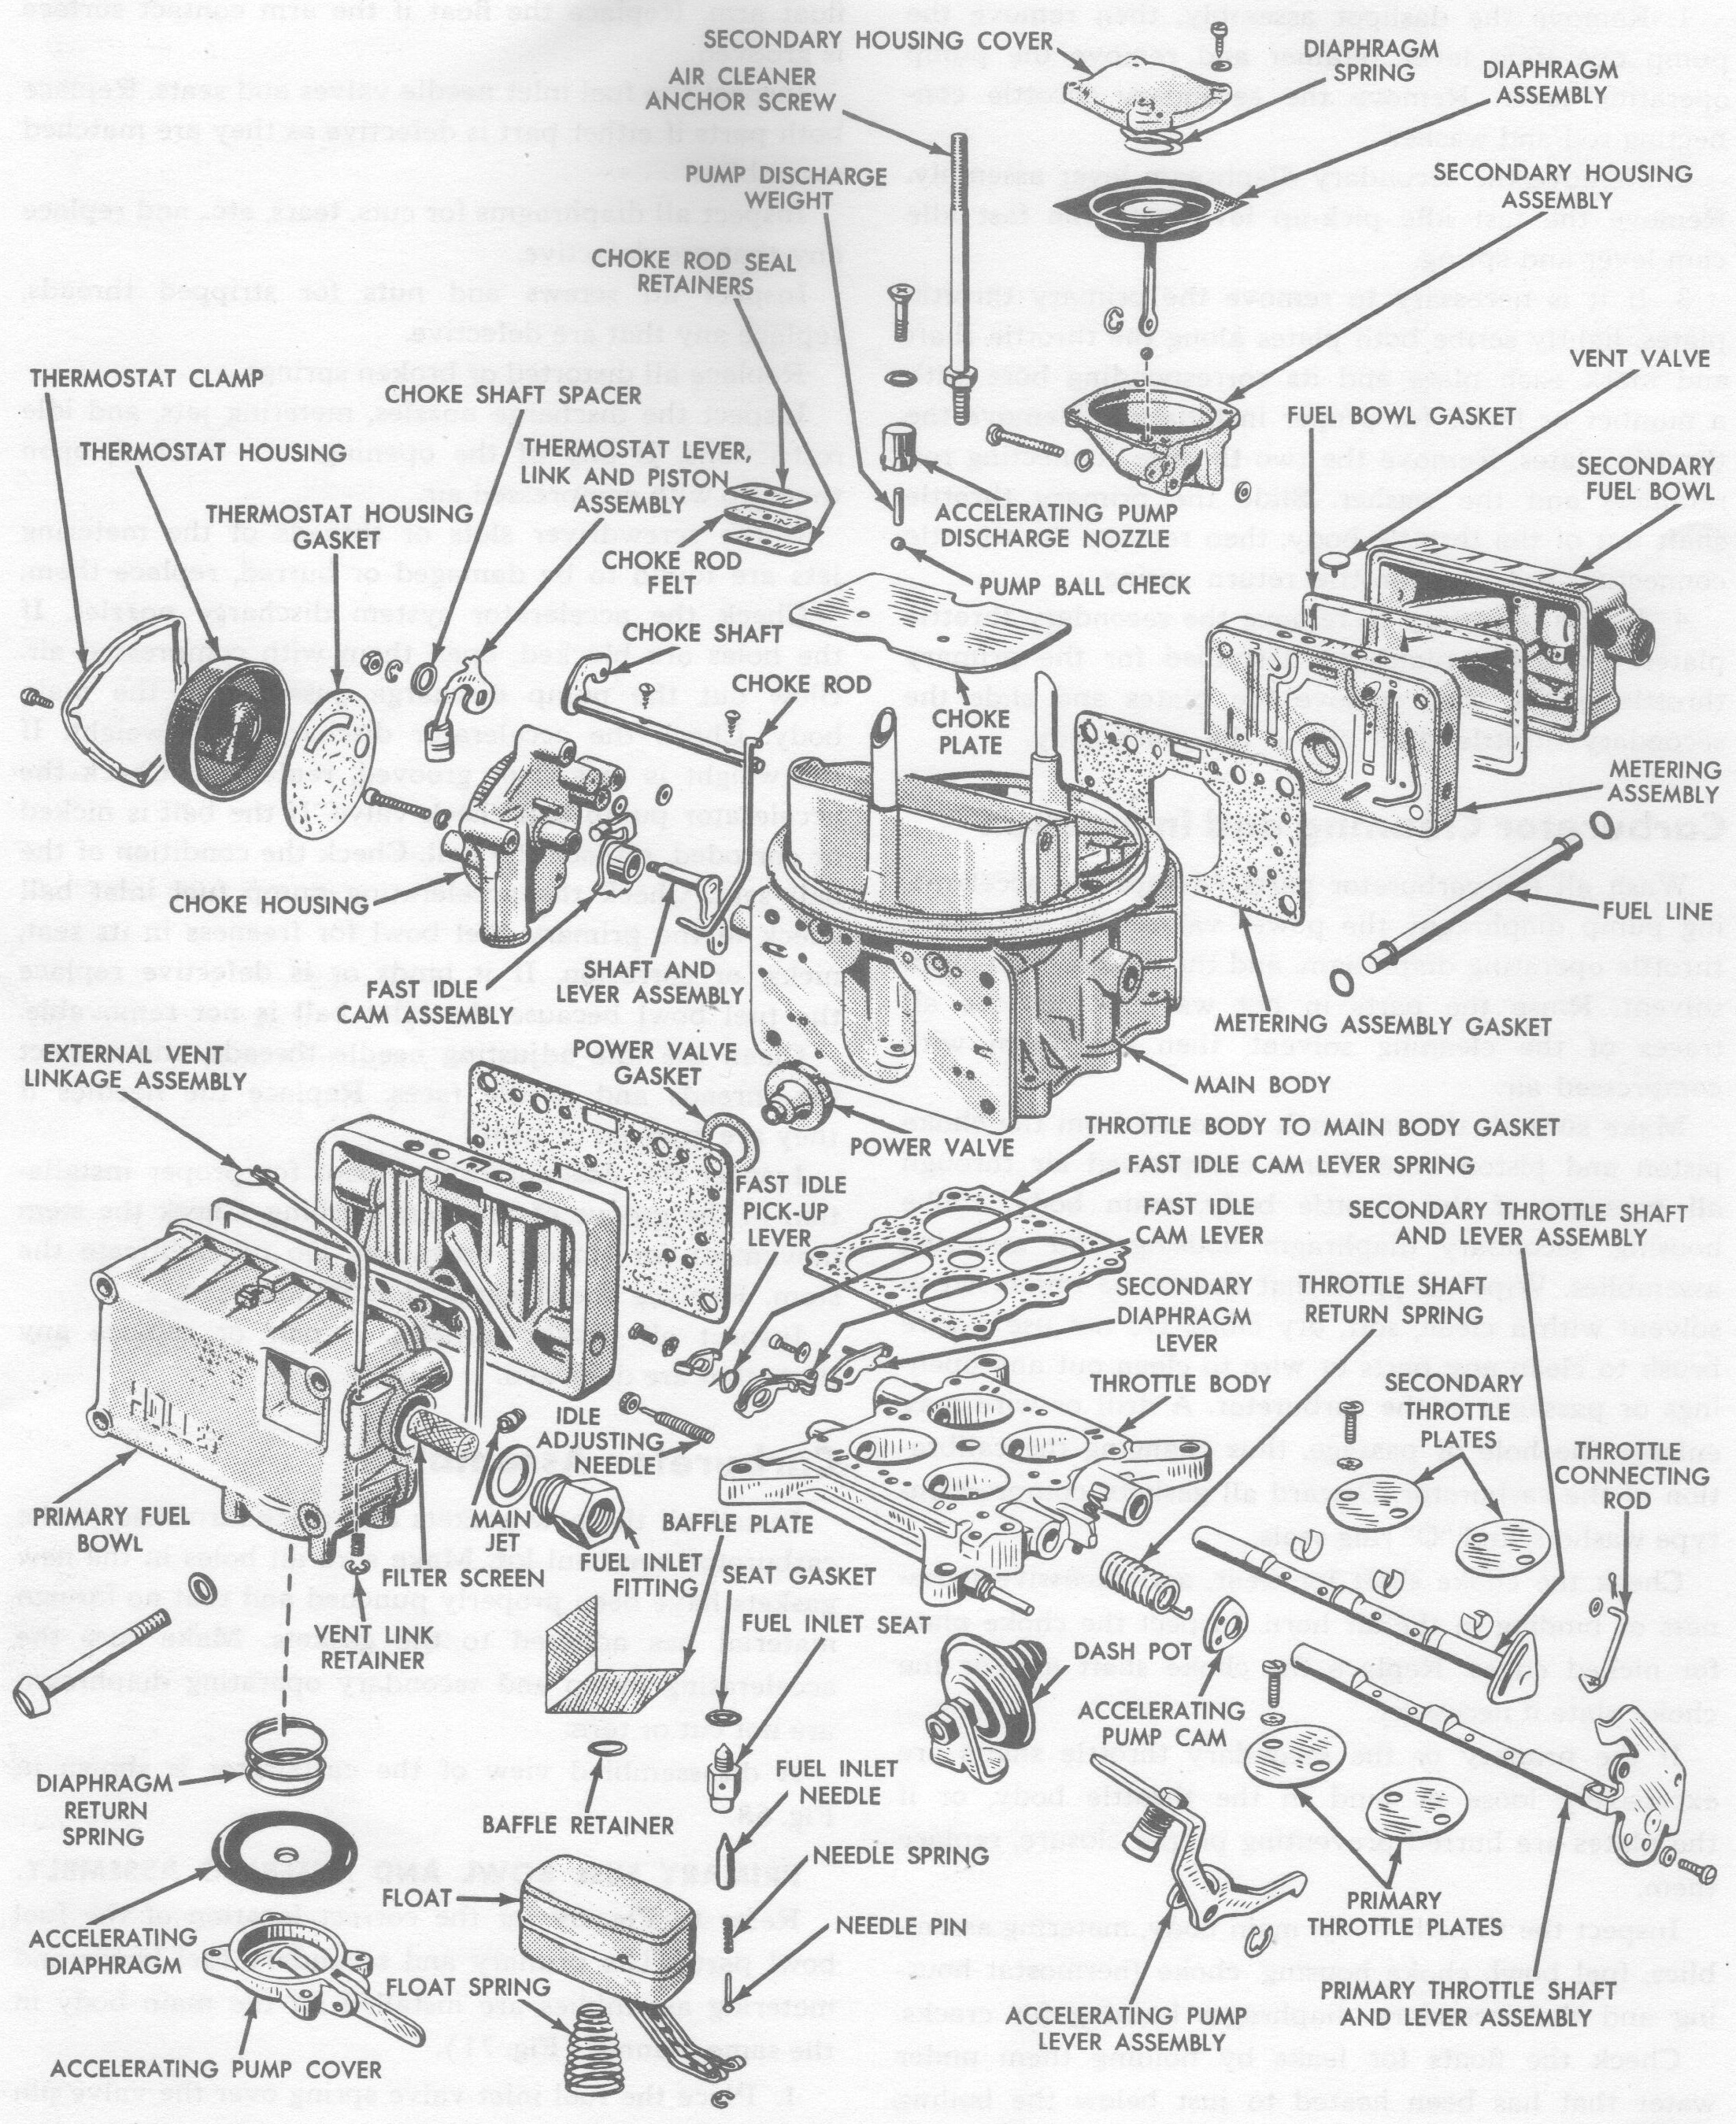 34 Holley 2 Barrel Carburetor Diagram